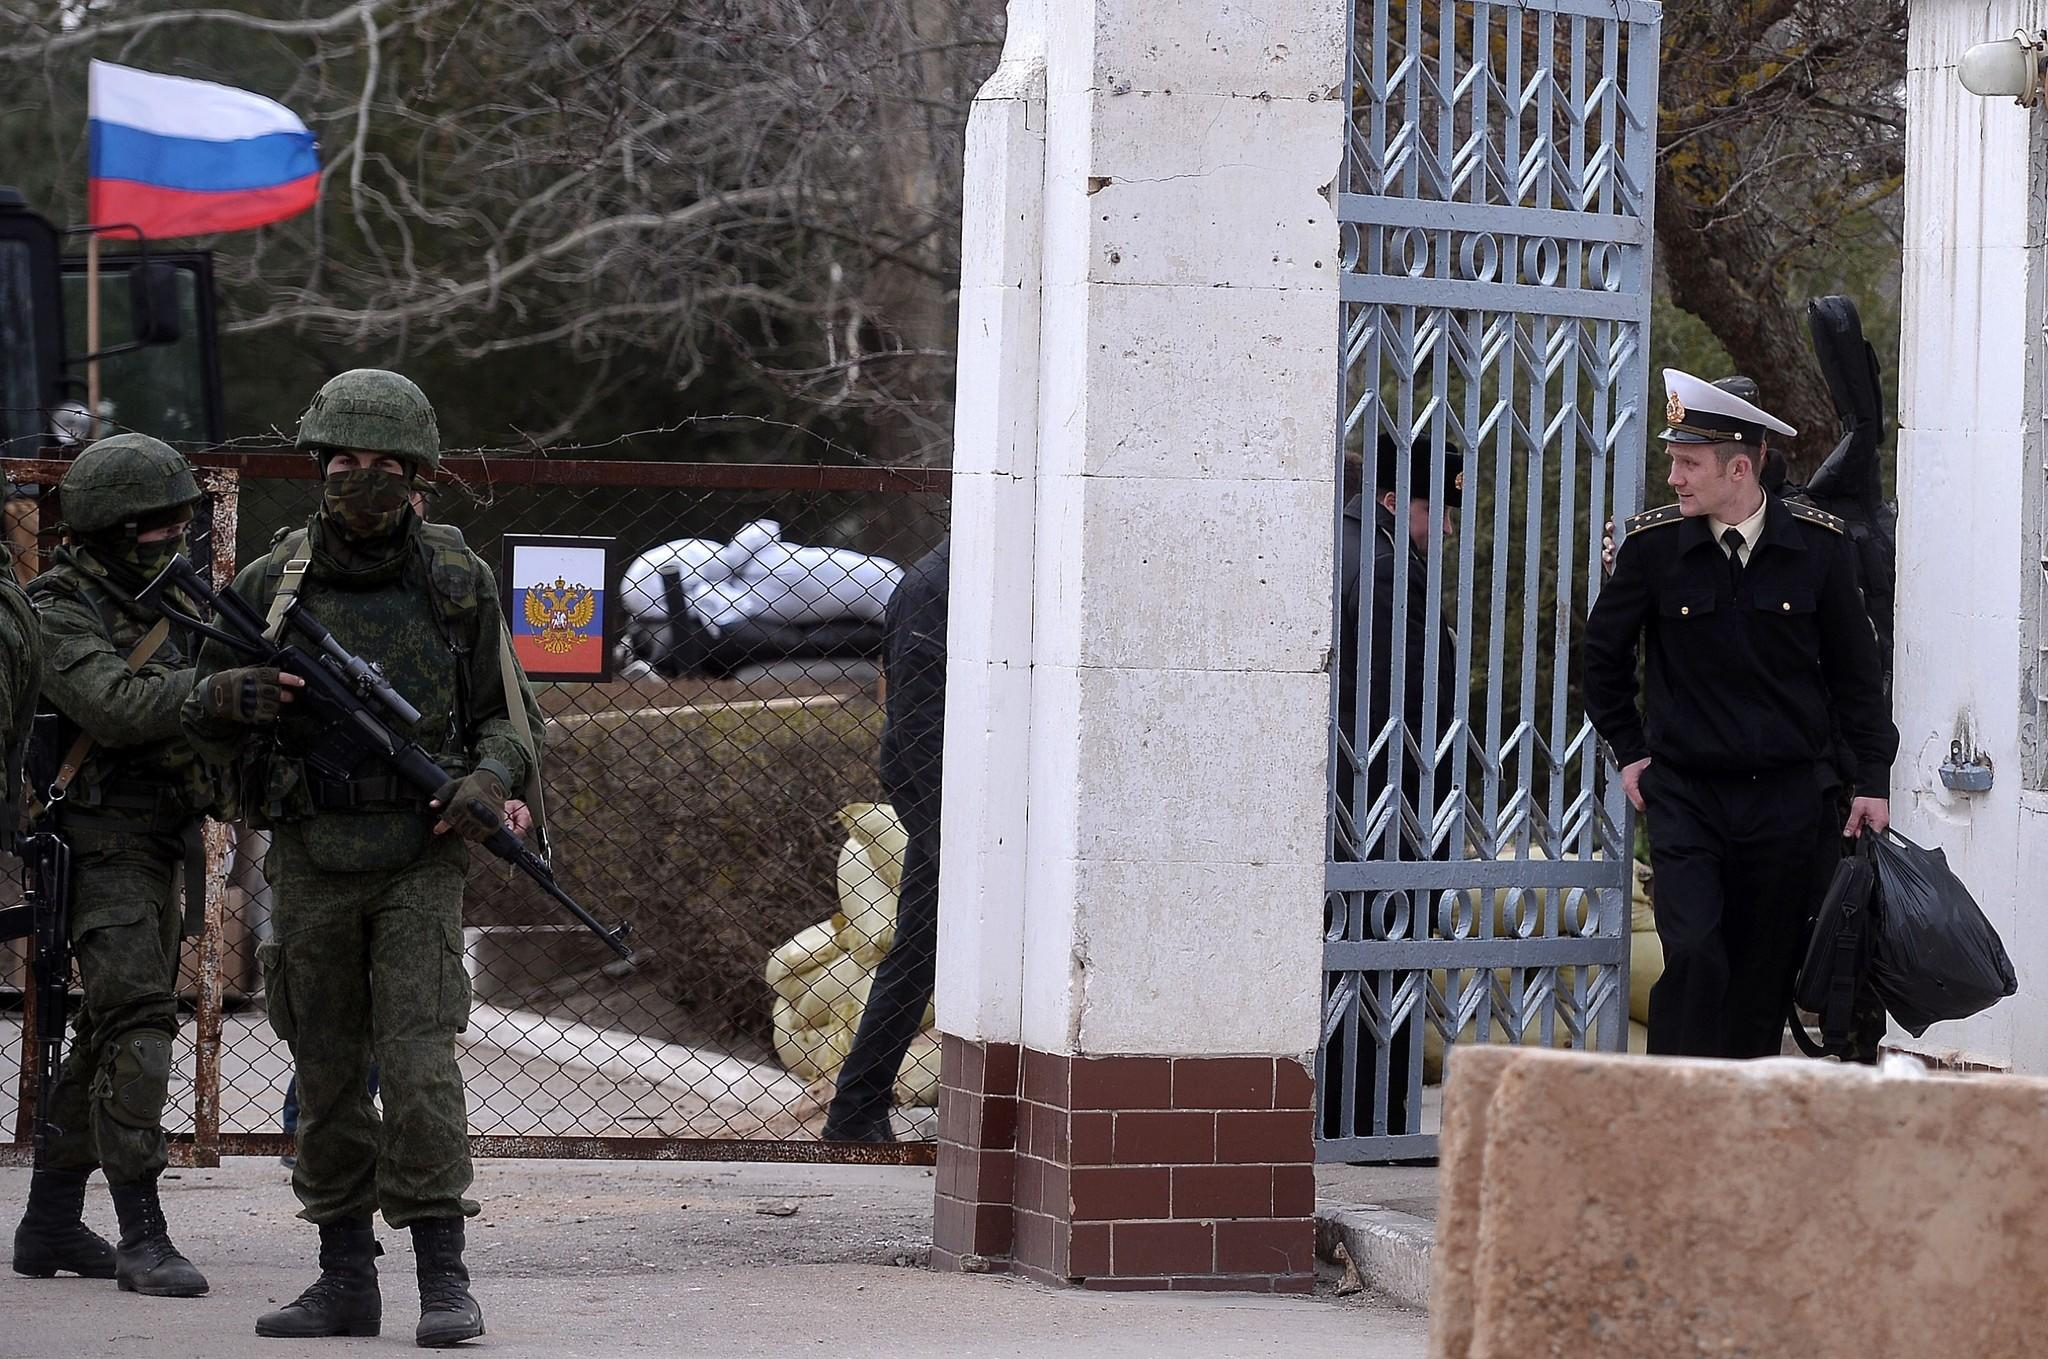 A Ukrainian officer, right, leaves a base in the Crimean city of Novoozerne after it was taken by Russian forces.